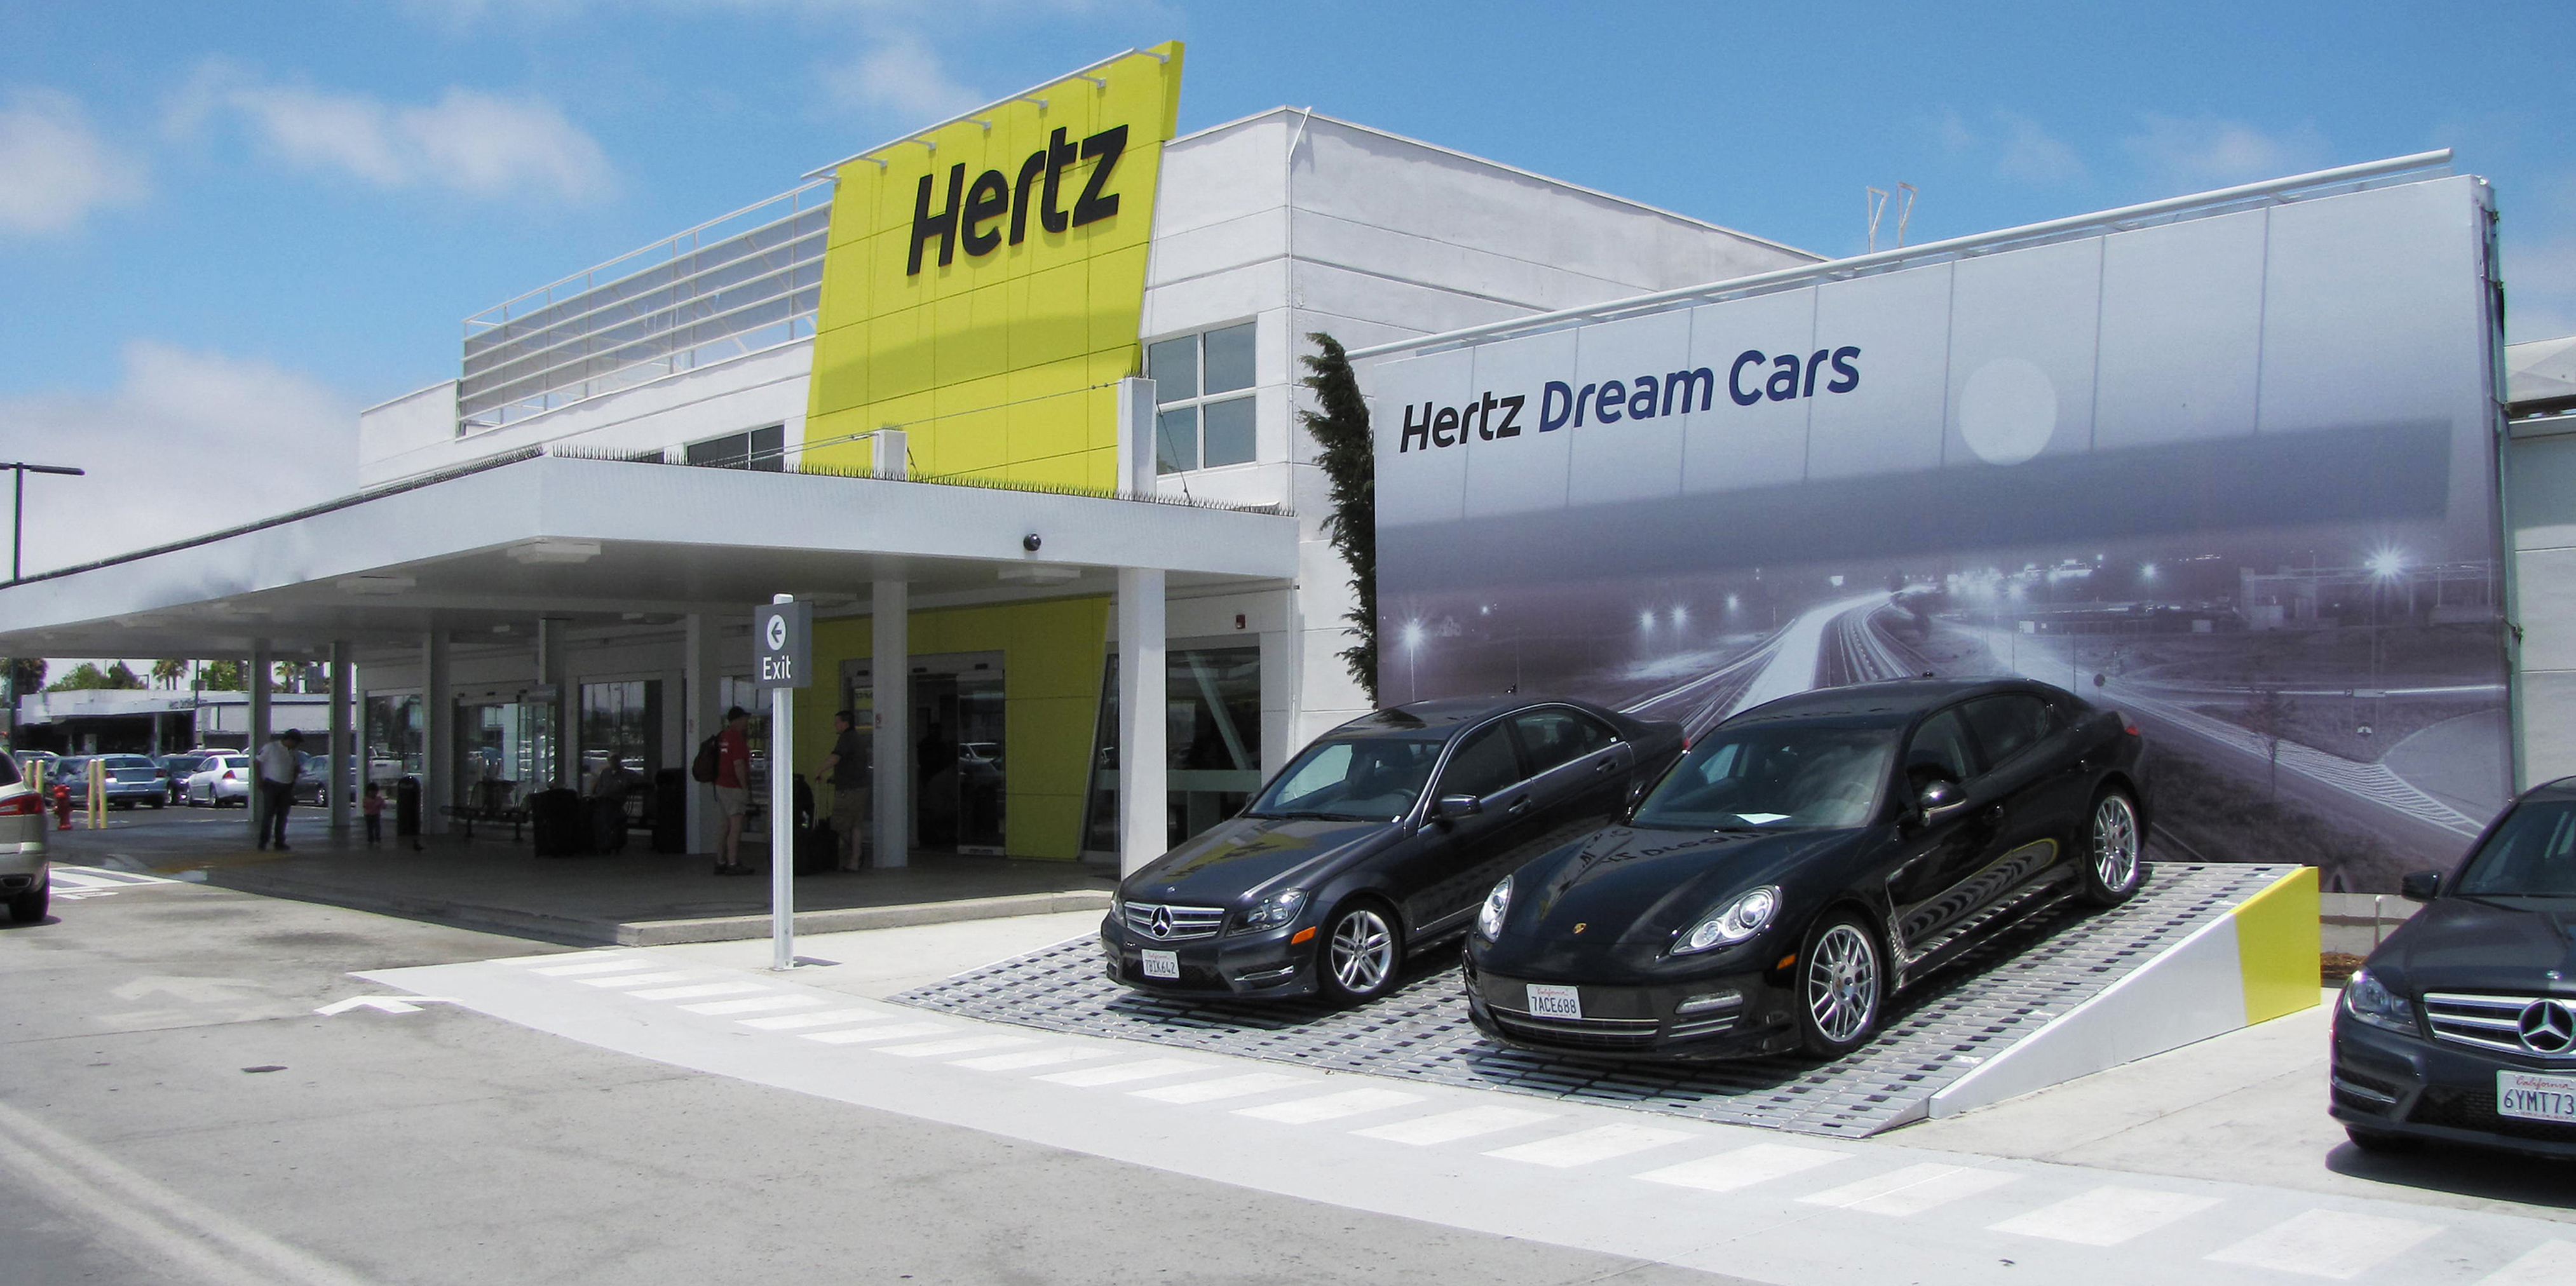 Hertz in DENVER, Colorado